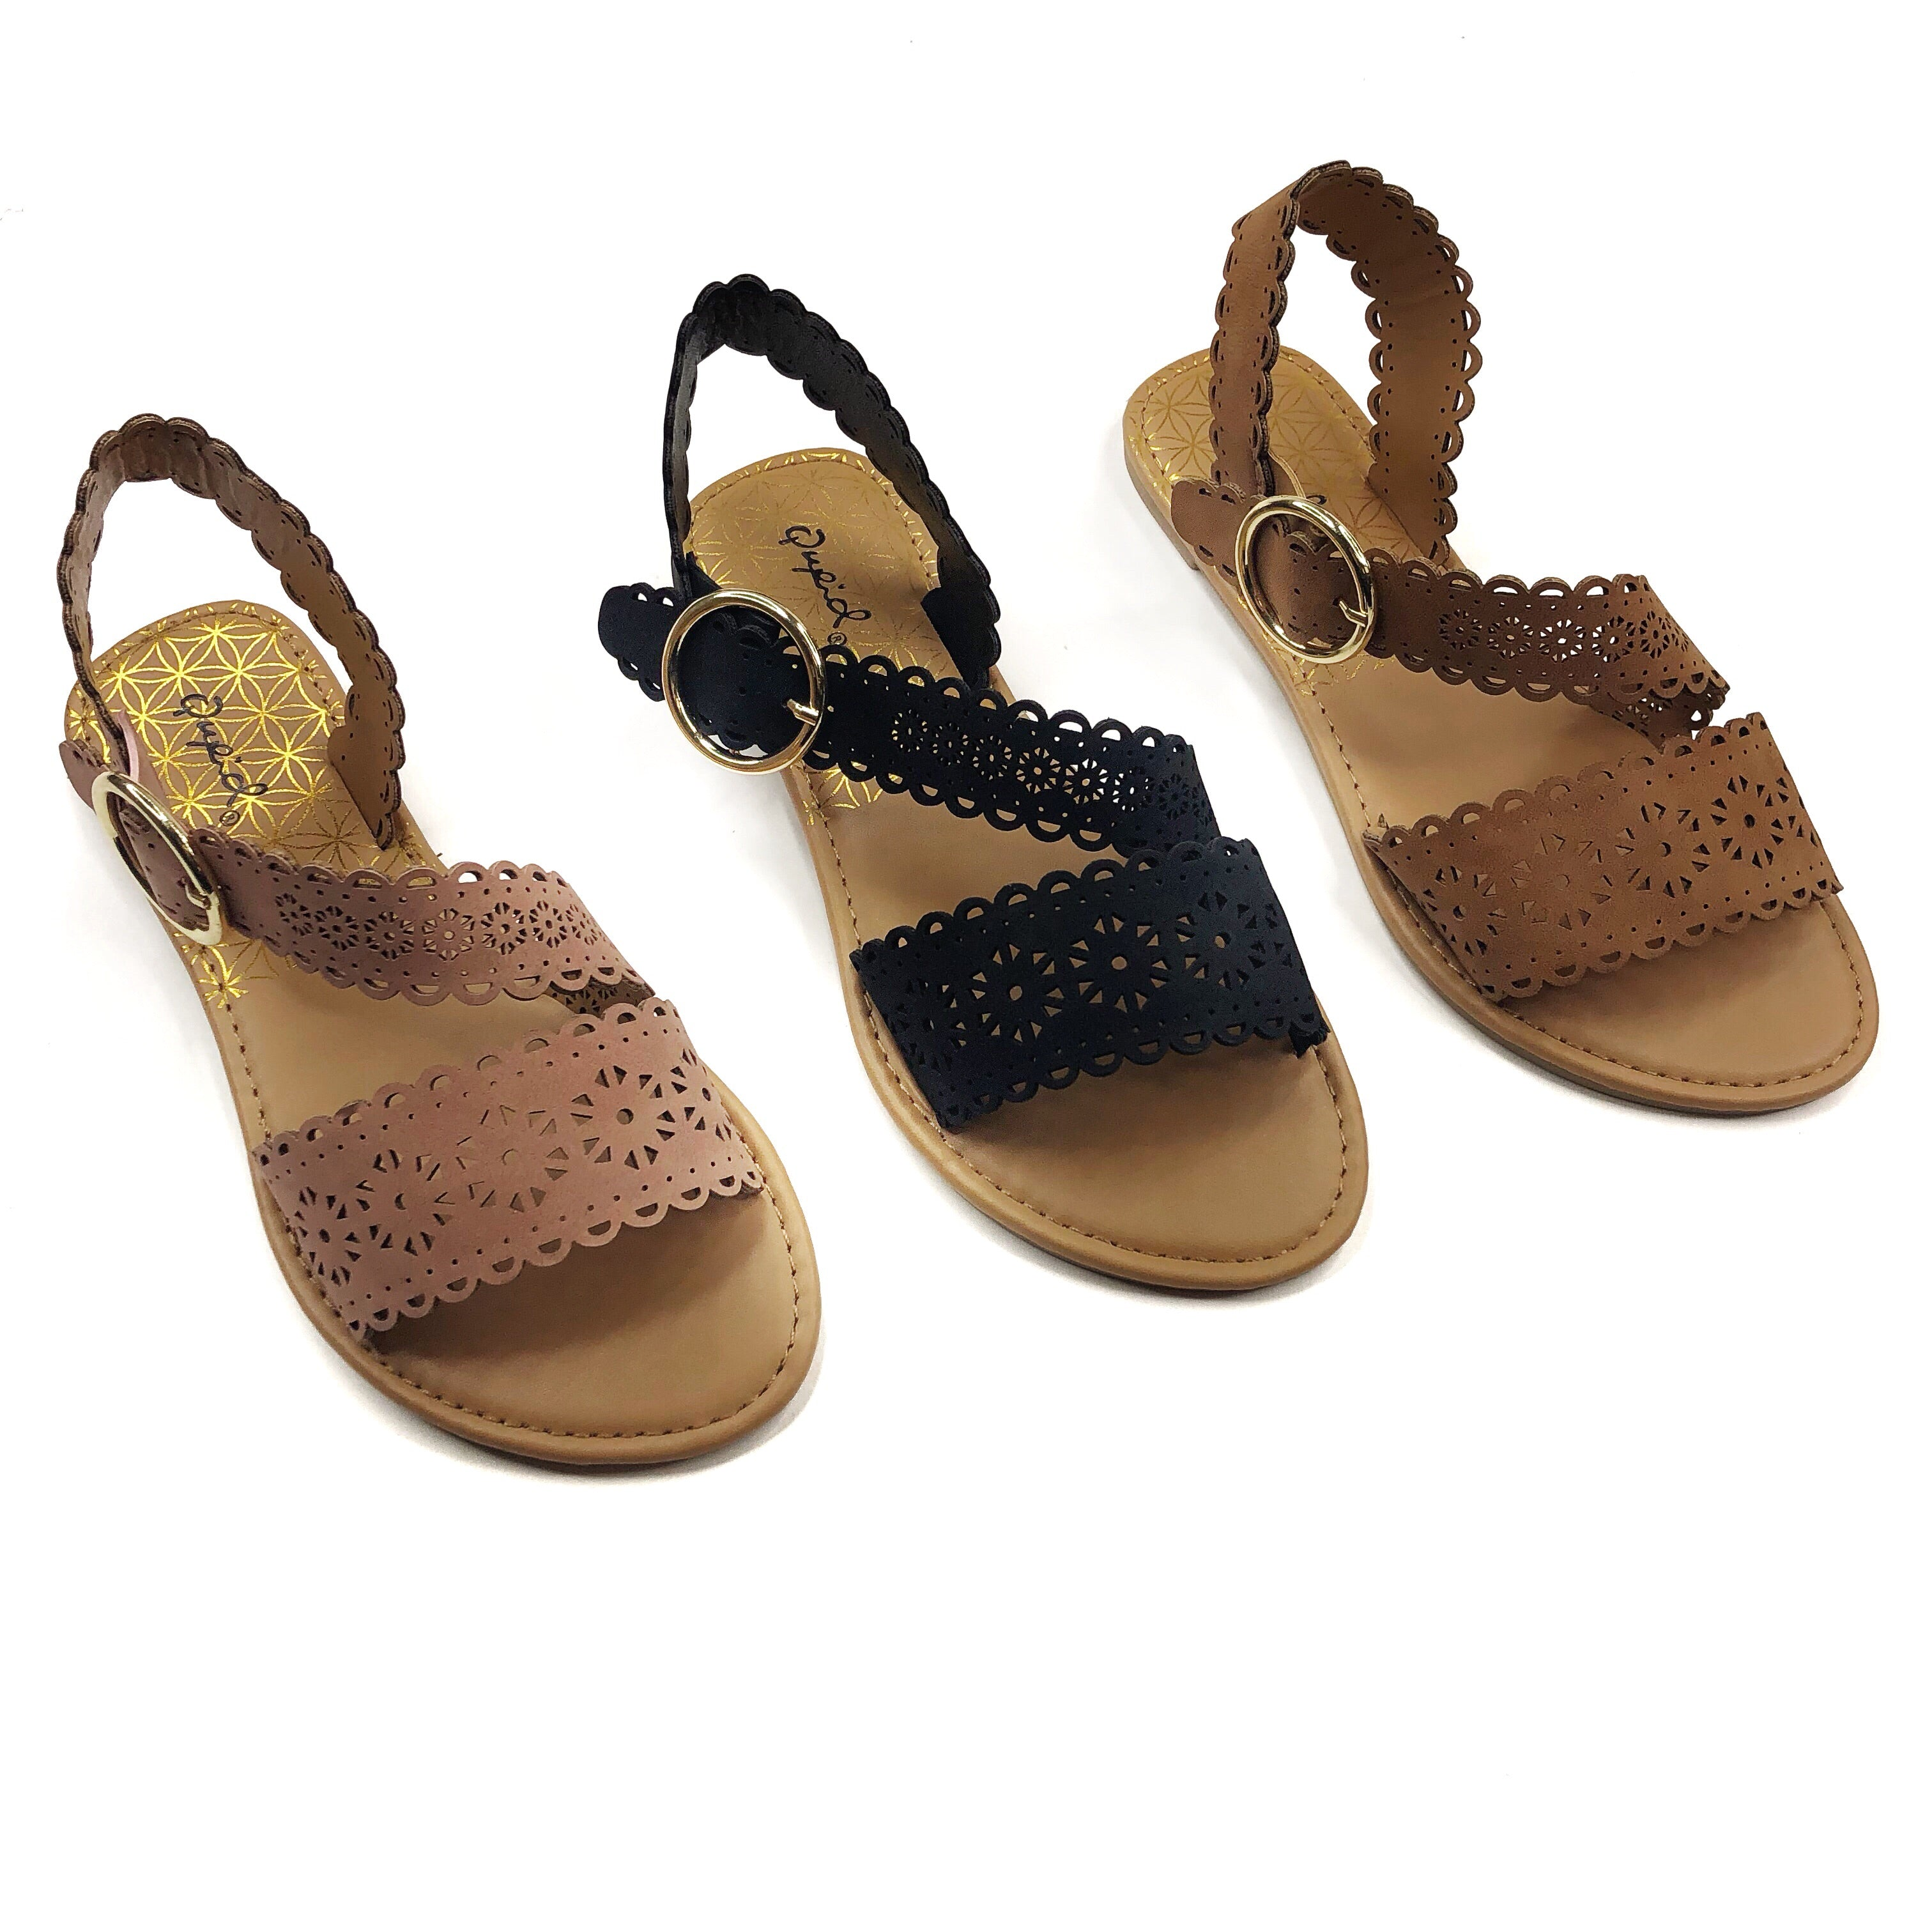 DEAL OF THE DAY! Scalloped Summer Sandals with Adjustable Buckle